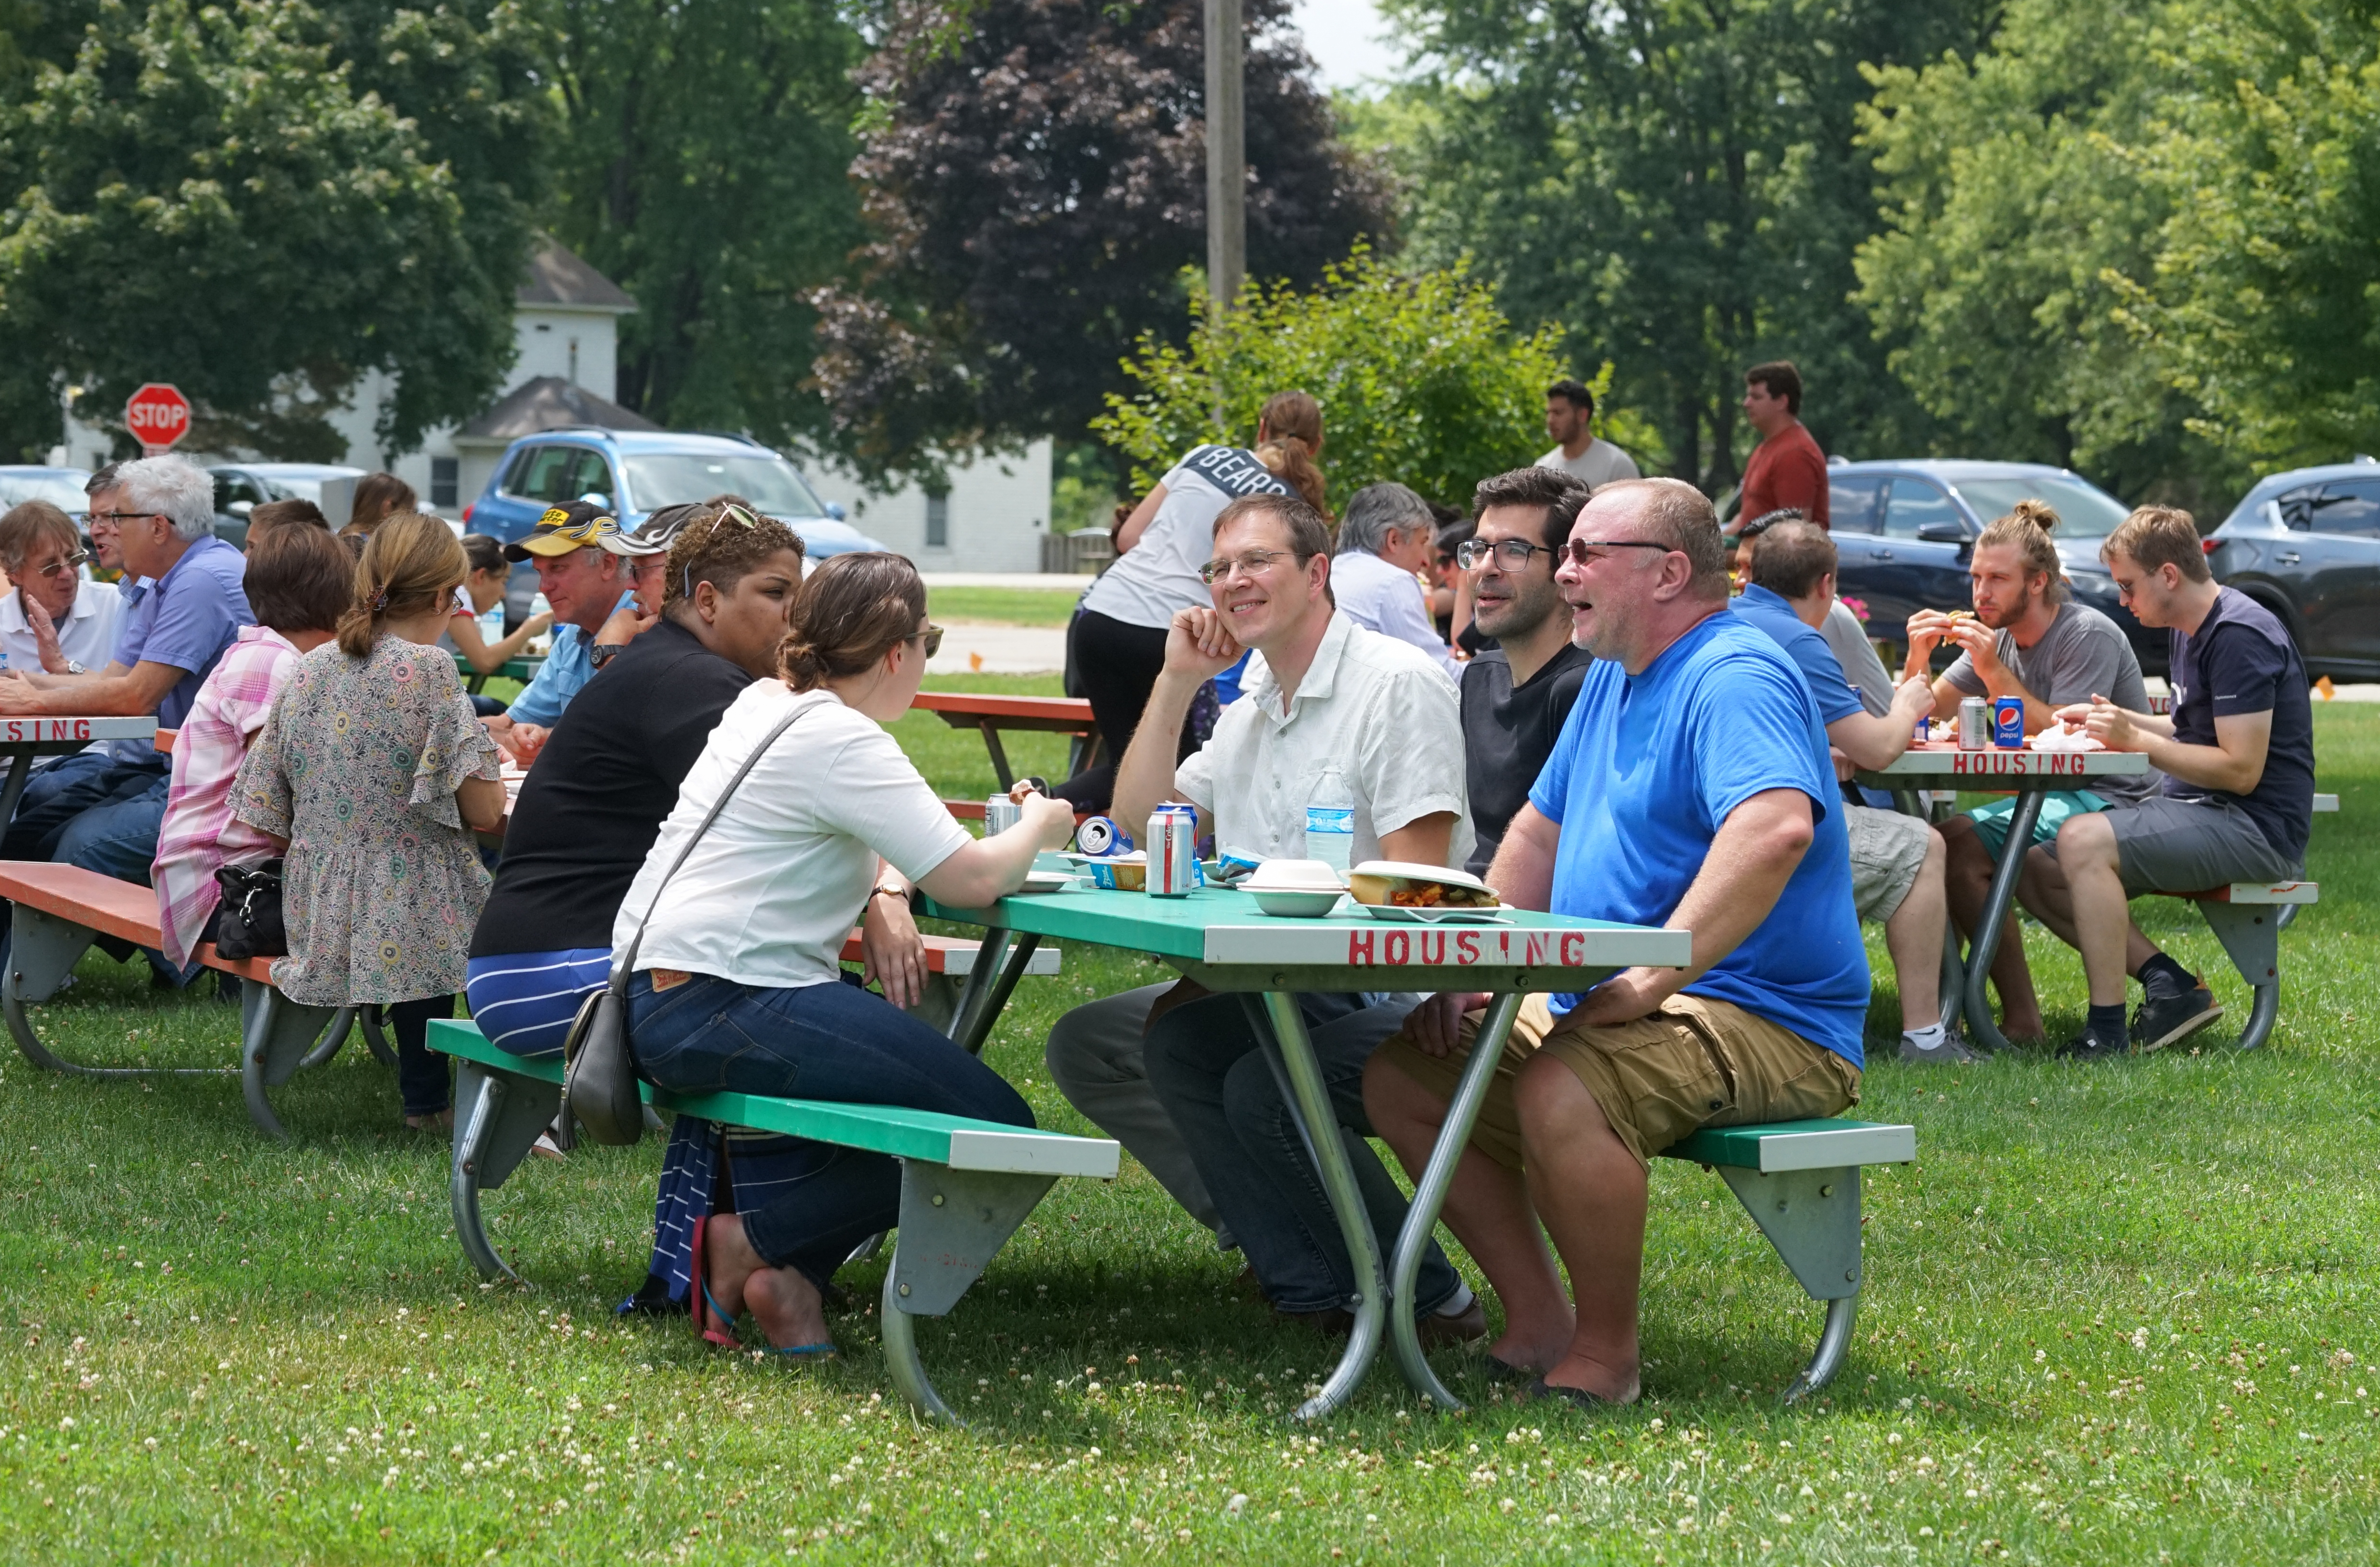 (1/5) On Aug. 8, the Particle Physics Division held a summer picnic — a beautiful day for one. people, lab life Photo: Leticia Shaddix